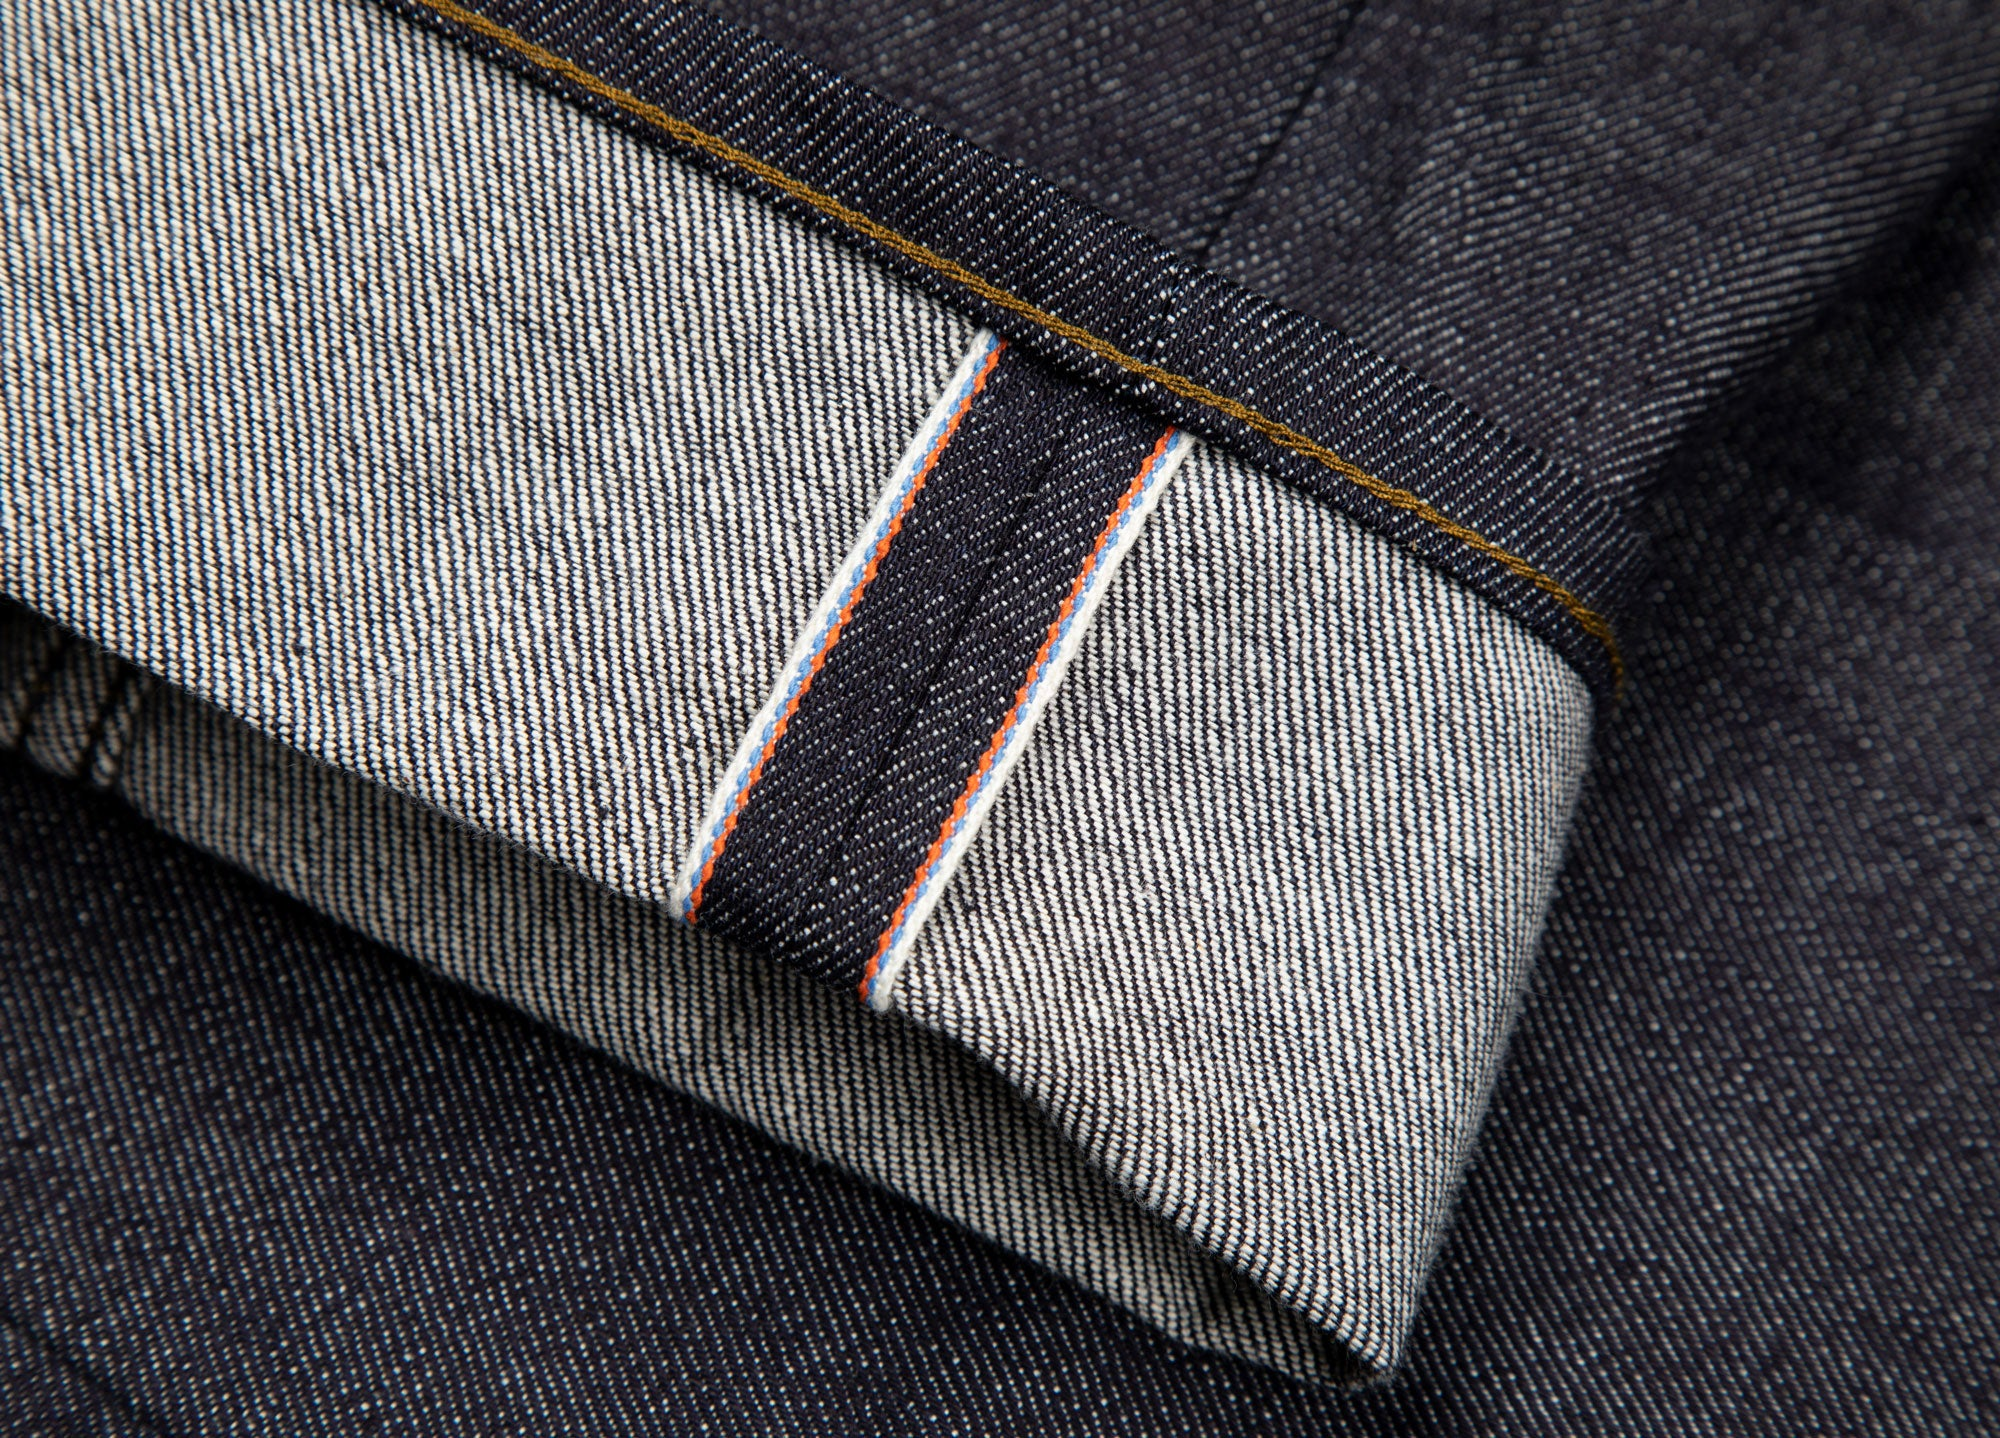 Finisterre-Selvedge-Denim-with-signature-brand-colours-on-selvedge-stripe